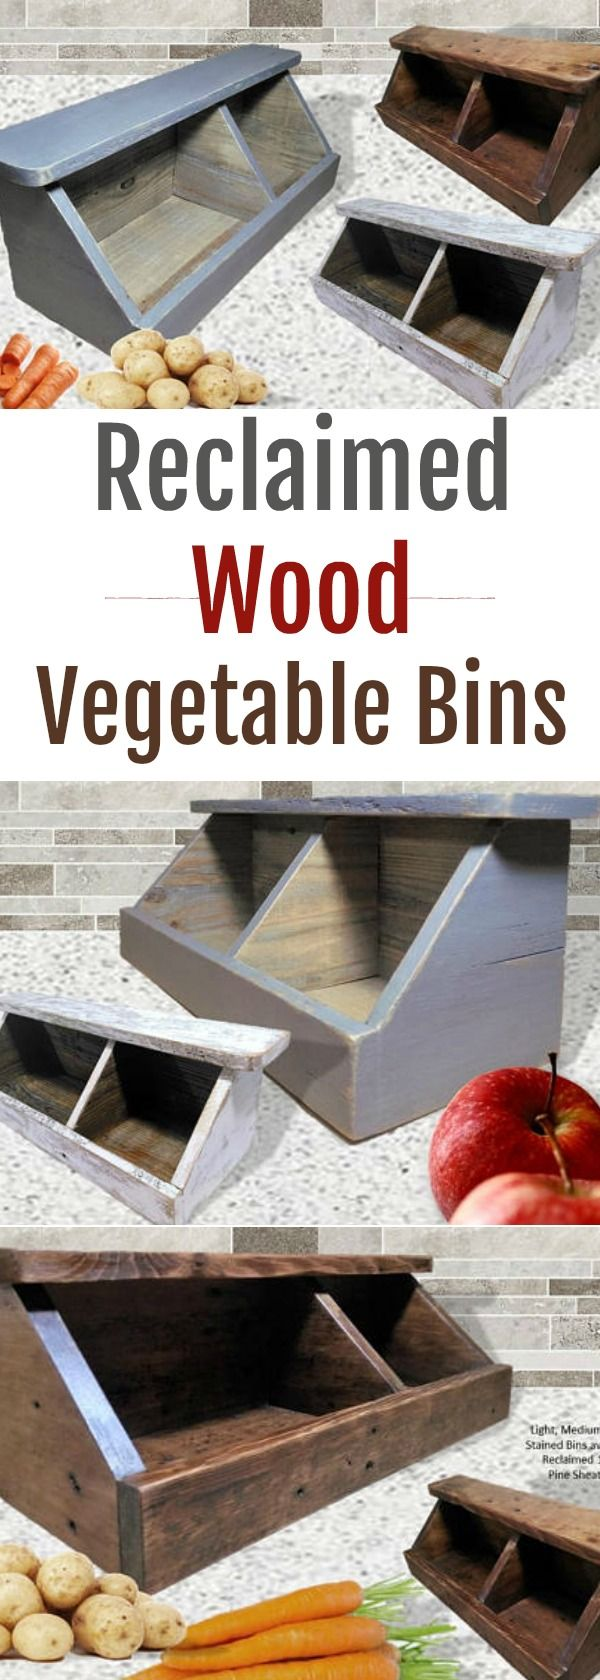 Reclaimed Wood Vegetable Bins - perfect place to store fresh fruit on dry kitchen ideas, juice kitchen ideas, cupcakes kitchen ideas, very large kitchen ideas, peach kitchen ideas, mint kitchen ideas, olive kitchen ideas, strawberry kitchen ideas, grape kitchen ideas, baking kitchen ideas, pumpkin kitchen ideas, pineapple kitchen ideas, garden kitchen ideas, love kitchen ideas, hipster kitchen ideas, cowboy kitchen ideas, tangerine kitchen ideas, nerd kitchen ideas, thanksgiving kitchen ideas, sweet kitchen ideas,